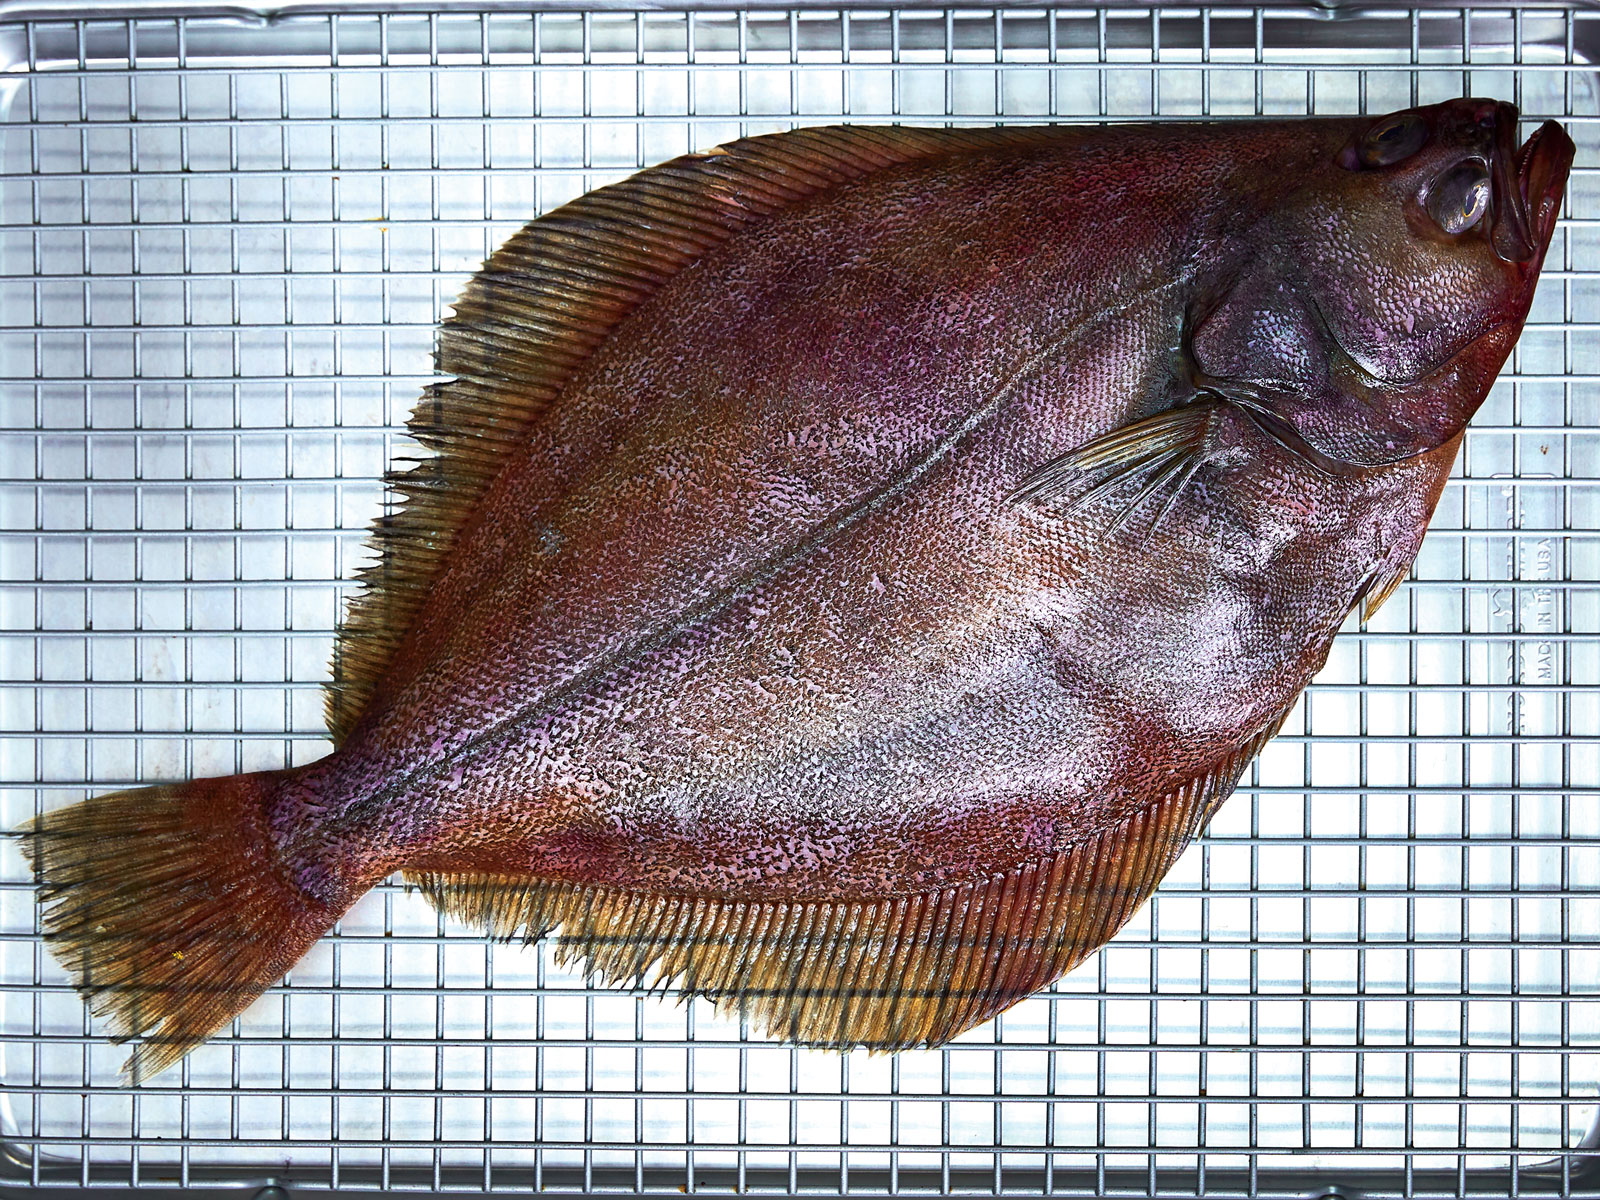 Grilled whole flatfish